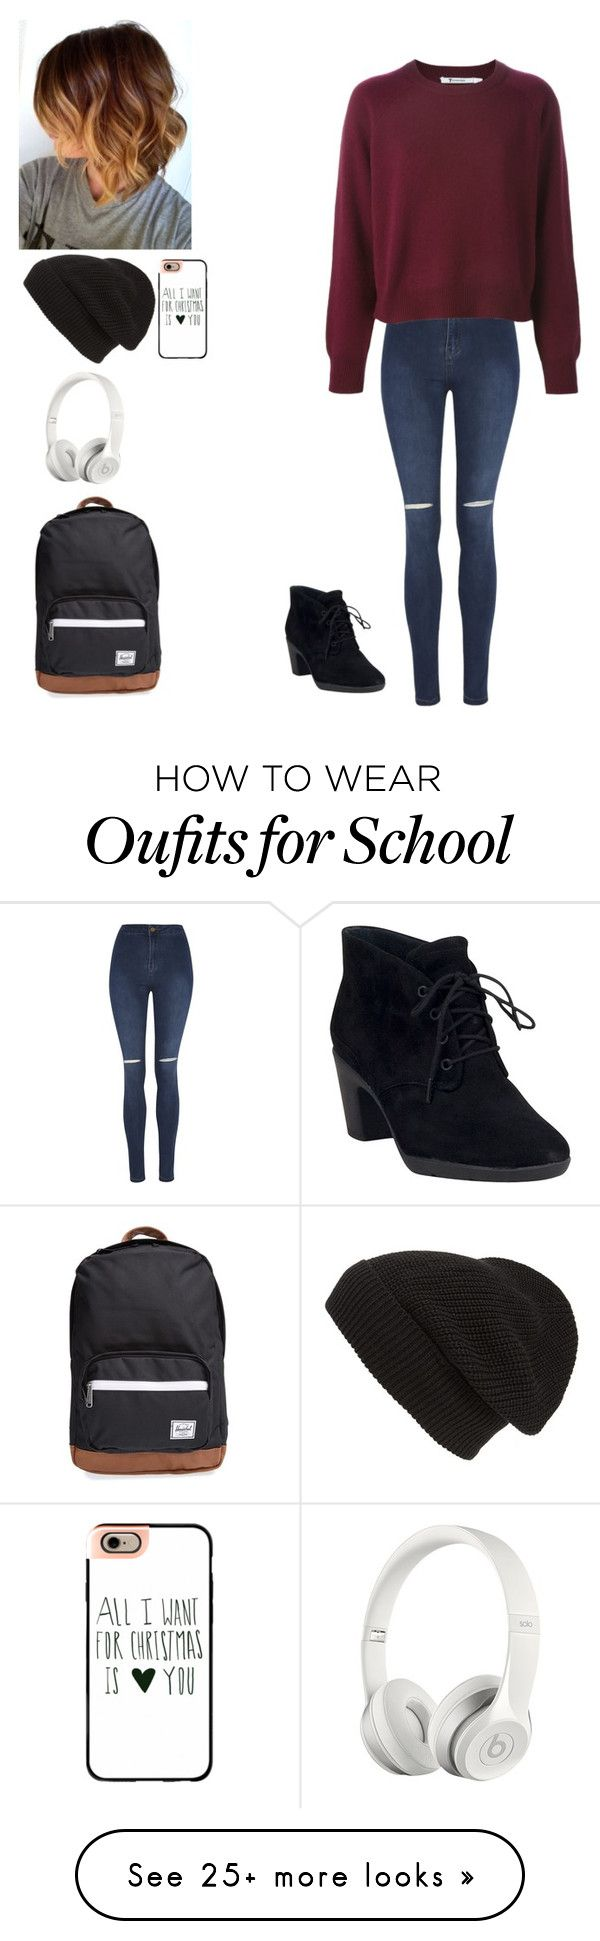 """""""Back to school"""" by rainbow22xd on Polyvore featuring George, Clarks, Phase 3, Casetify, Herschel Supply Co. and Beats by Dr. Dre"""